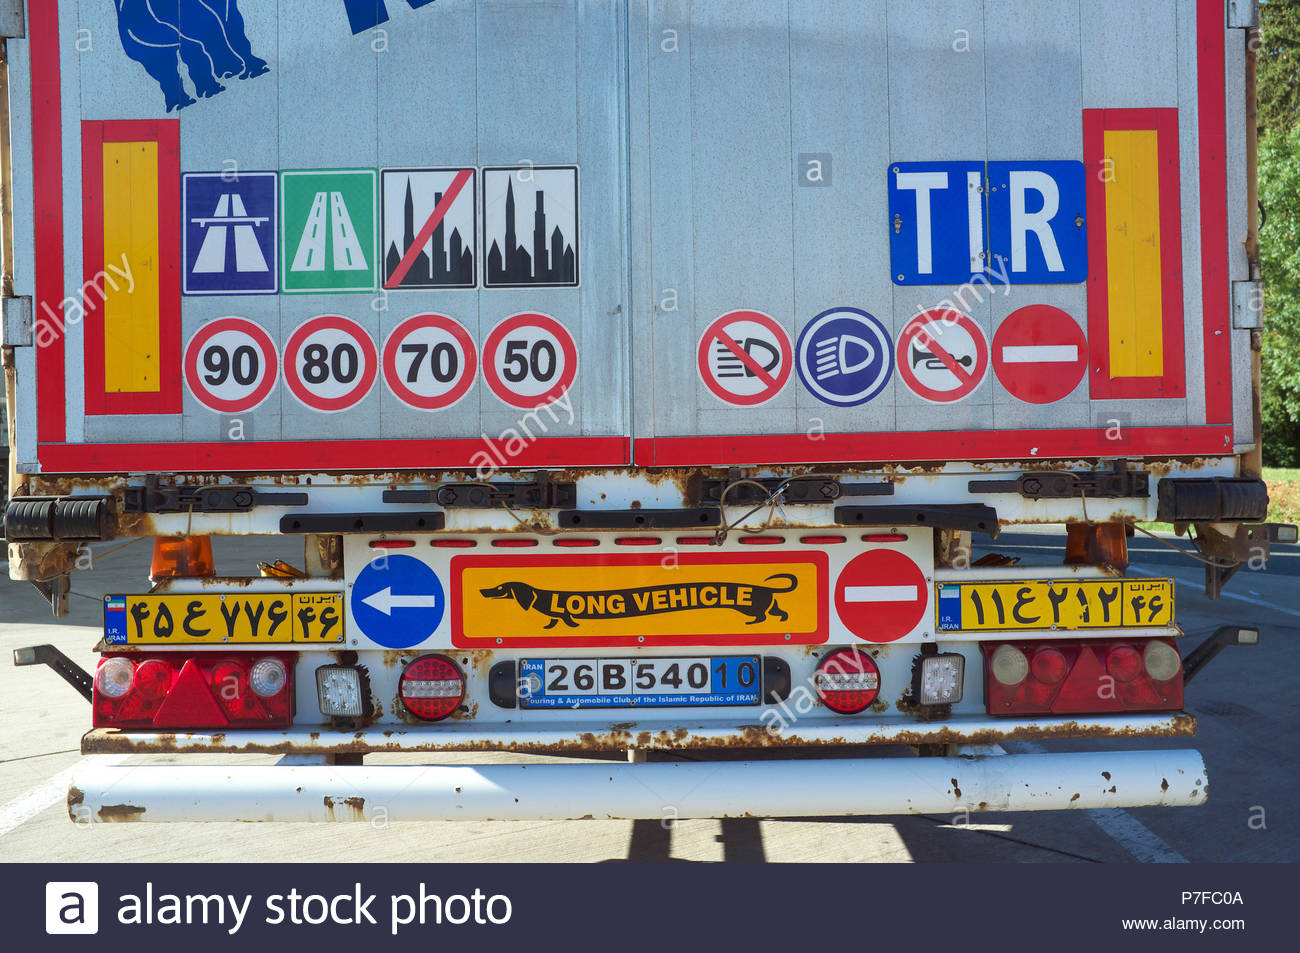 Rear of an Iranian registered truck, showing an assortment of highway code information signs, and a long vehicle (with dachshund dog) reflector plate. Stock Photo